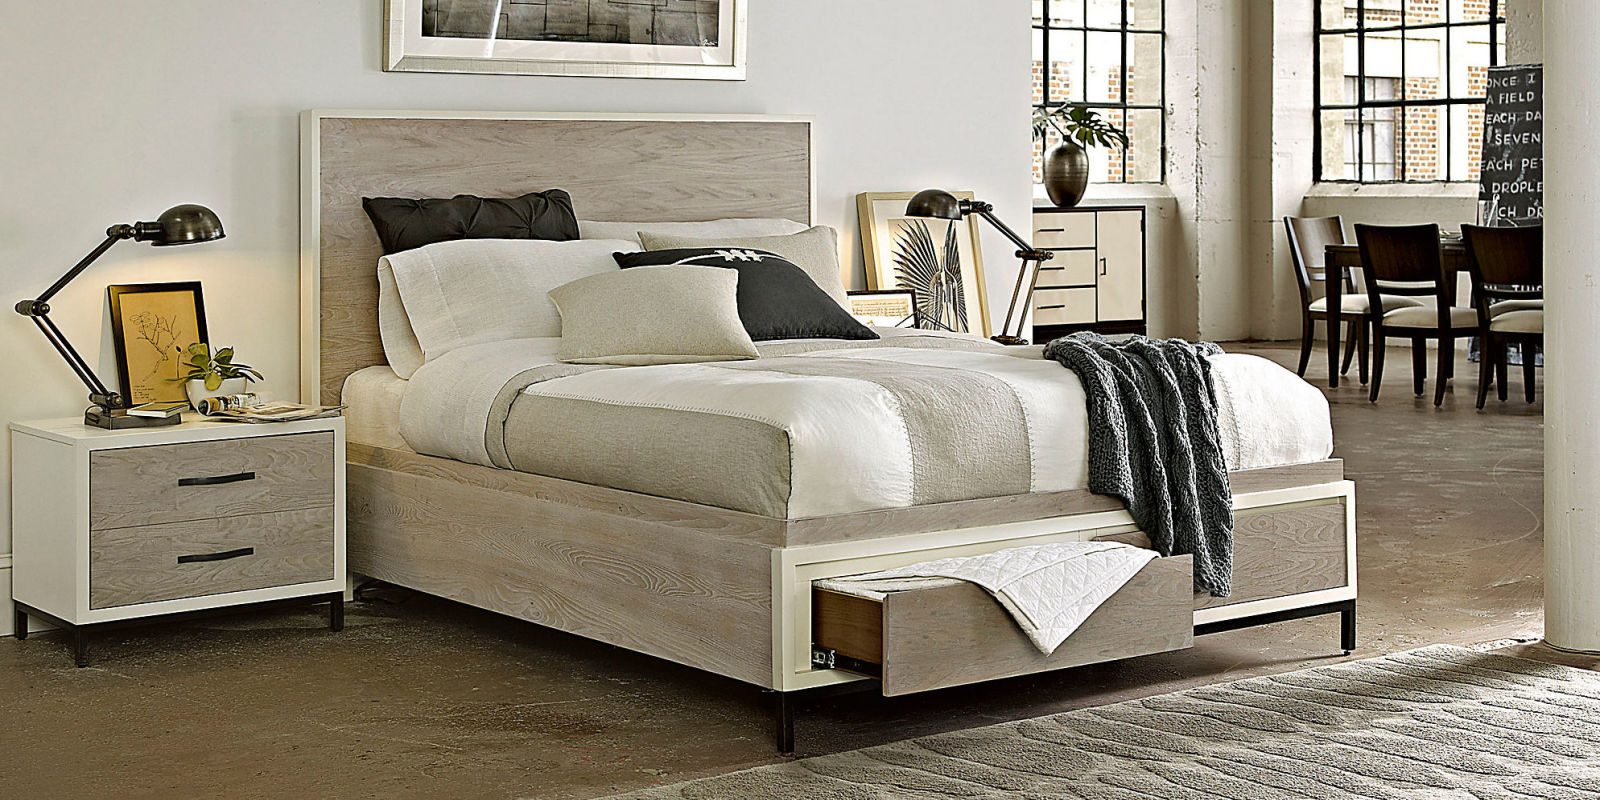 14 Best Storage Beds Of 2017 Platform Storage Beds And